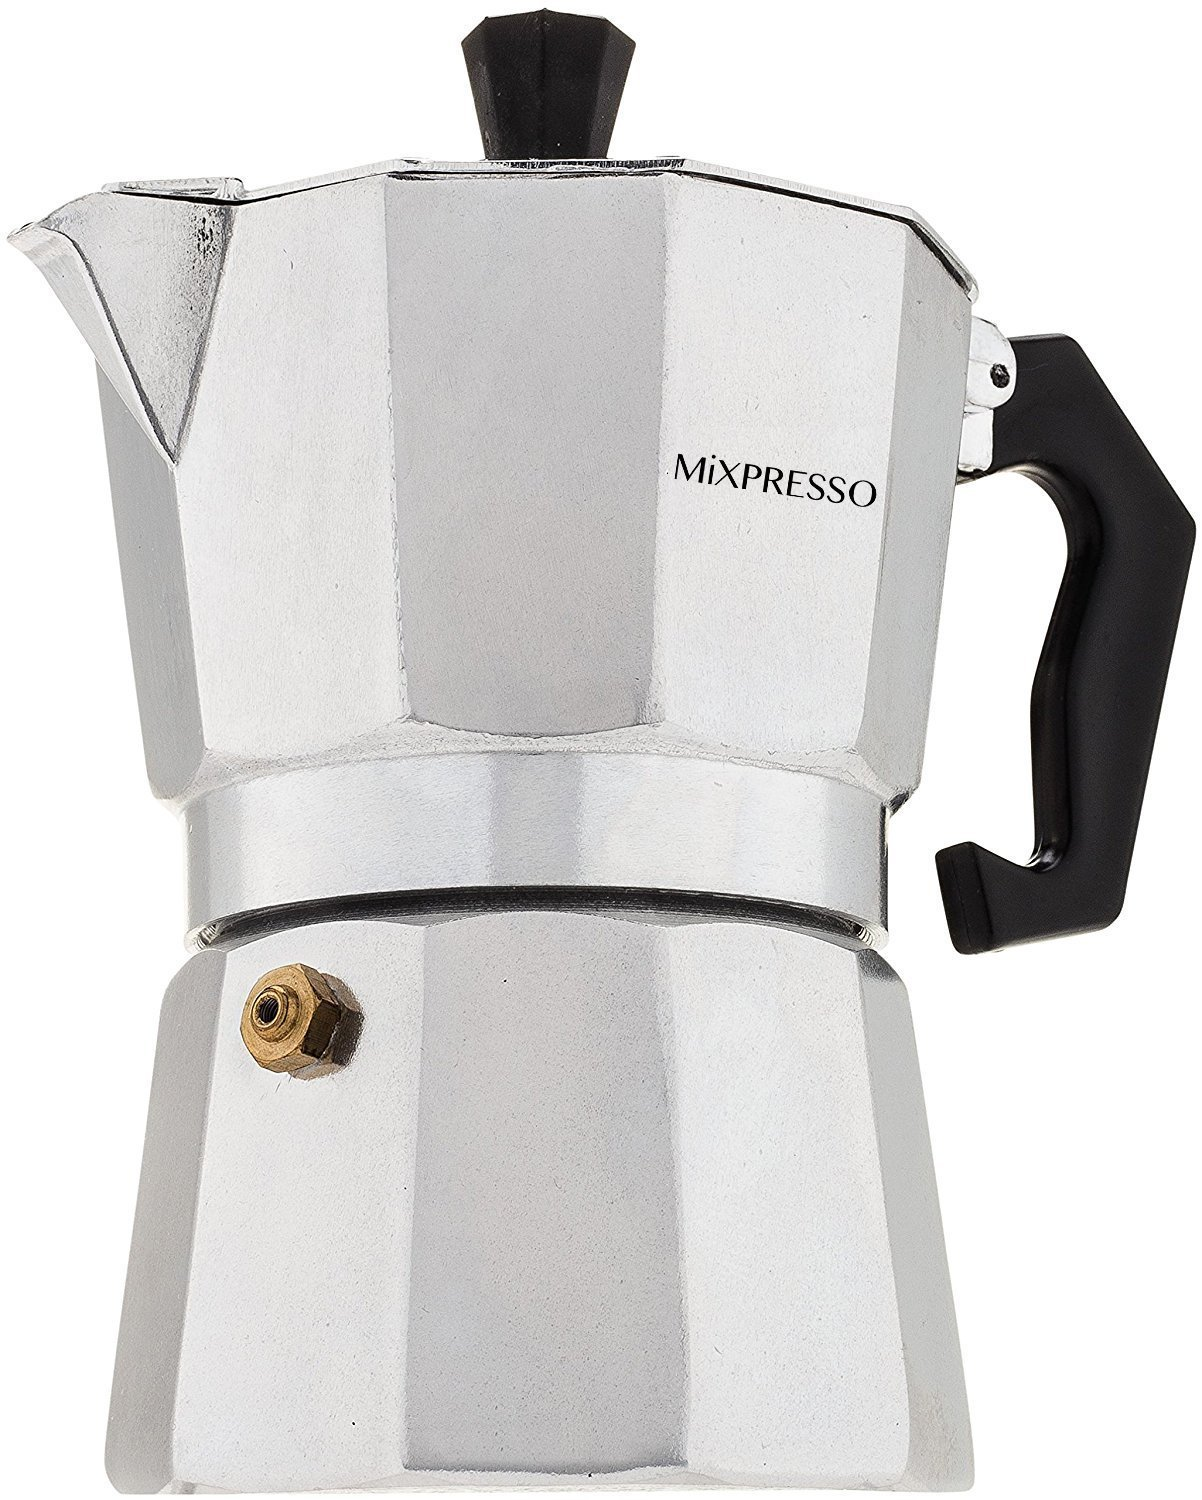 Moka Pot Coffee Maker- Stovetop Espresso Maker Easy To Use And Clean Italian Design For Best Espresso Coffee - By Mixpresso Coffee AX-AY-ABHI-117747